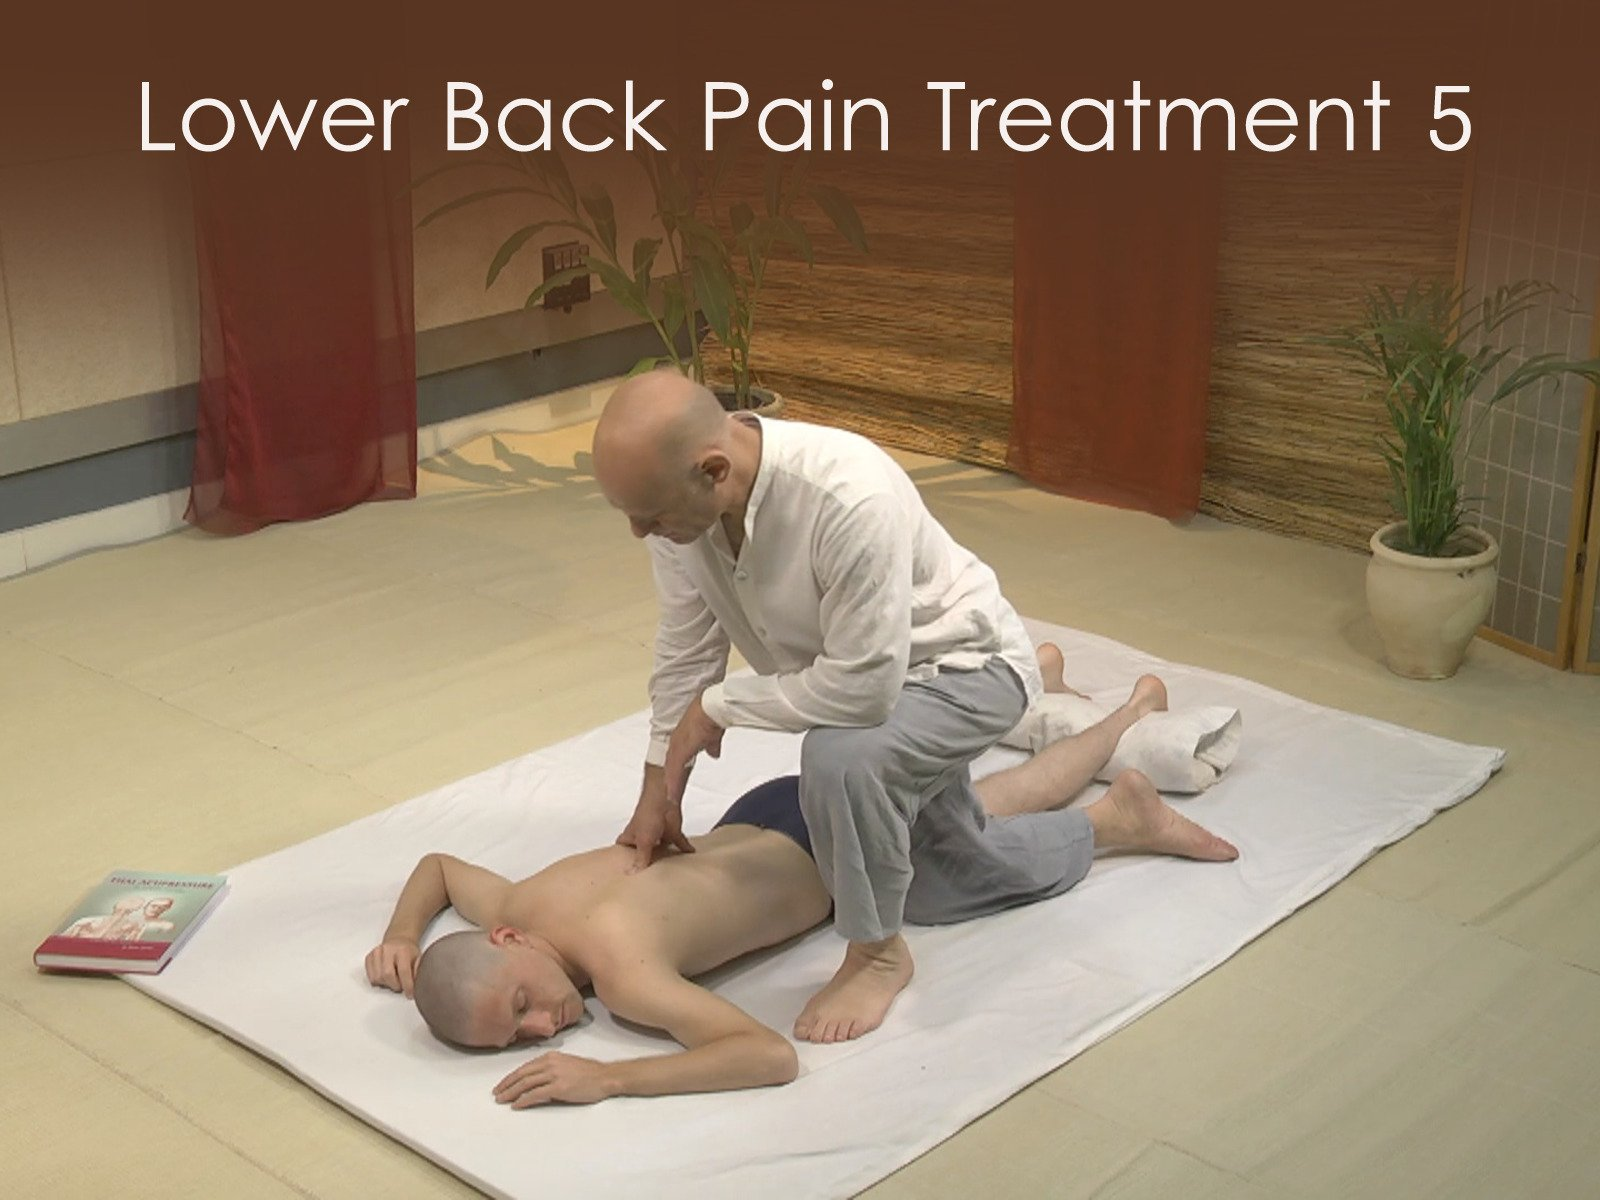 Treatment Routine 39 - Lower Back Pain when Bowing Face Down